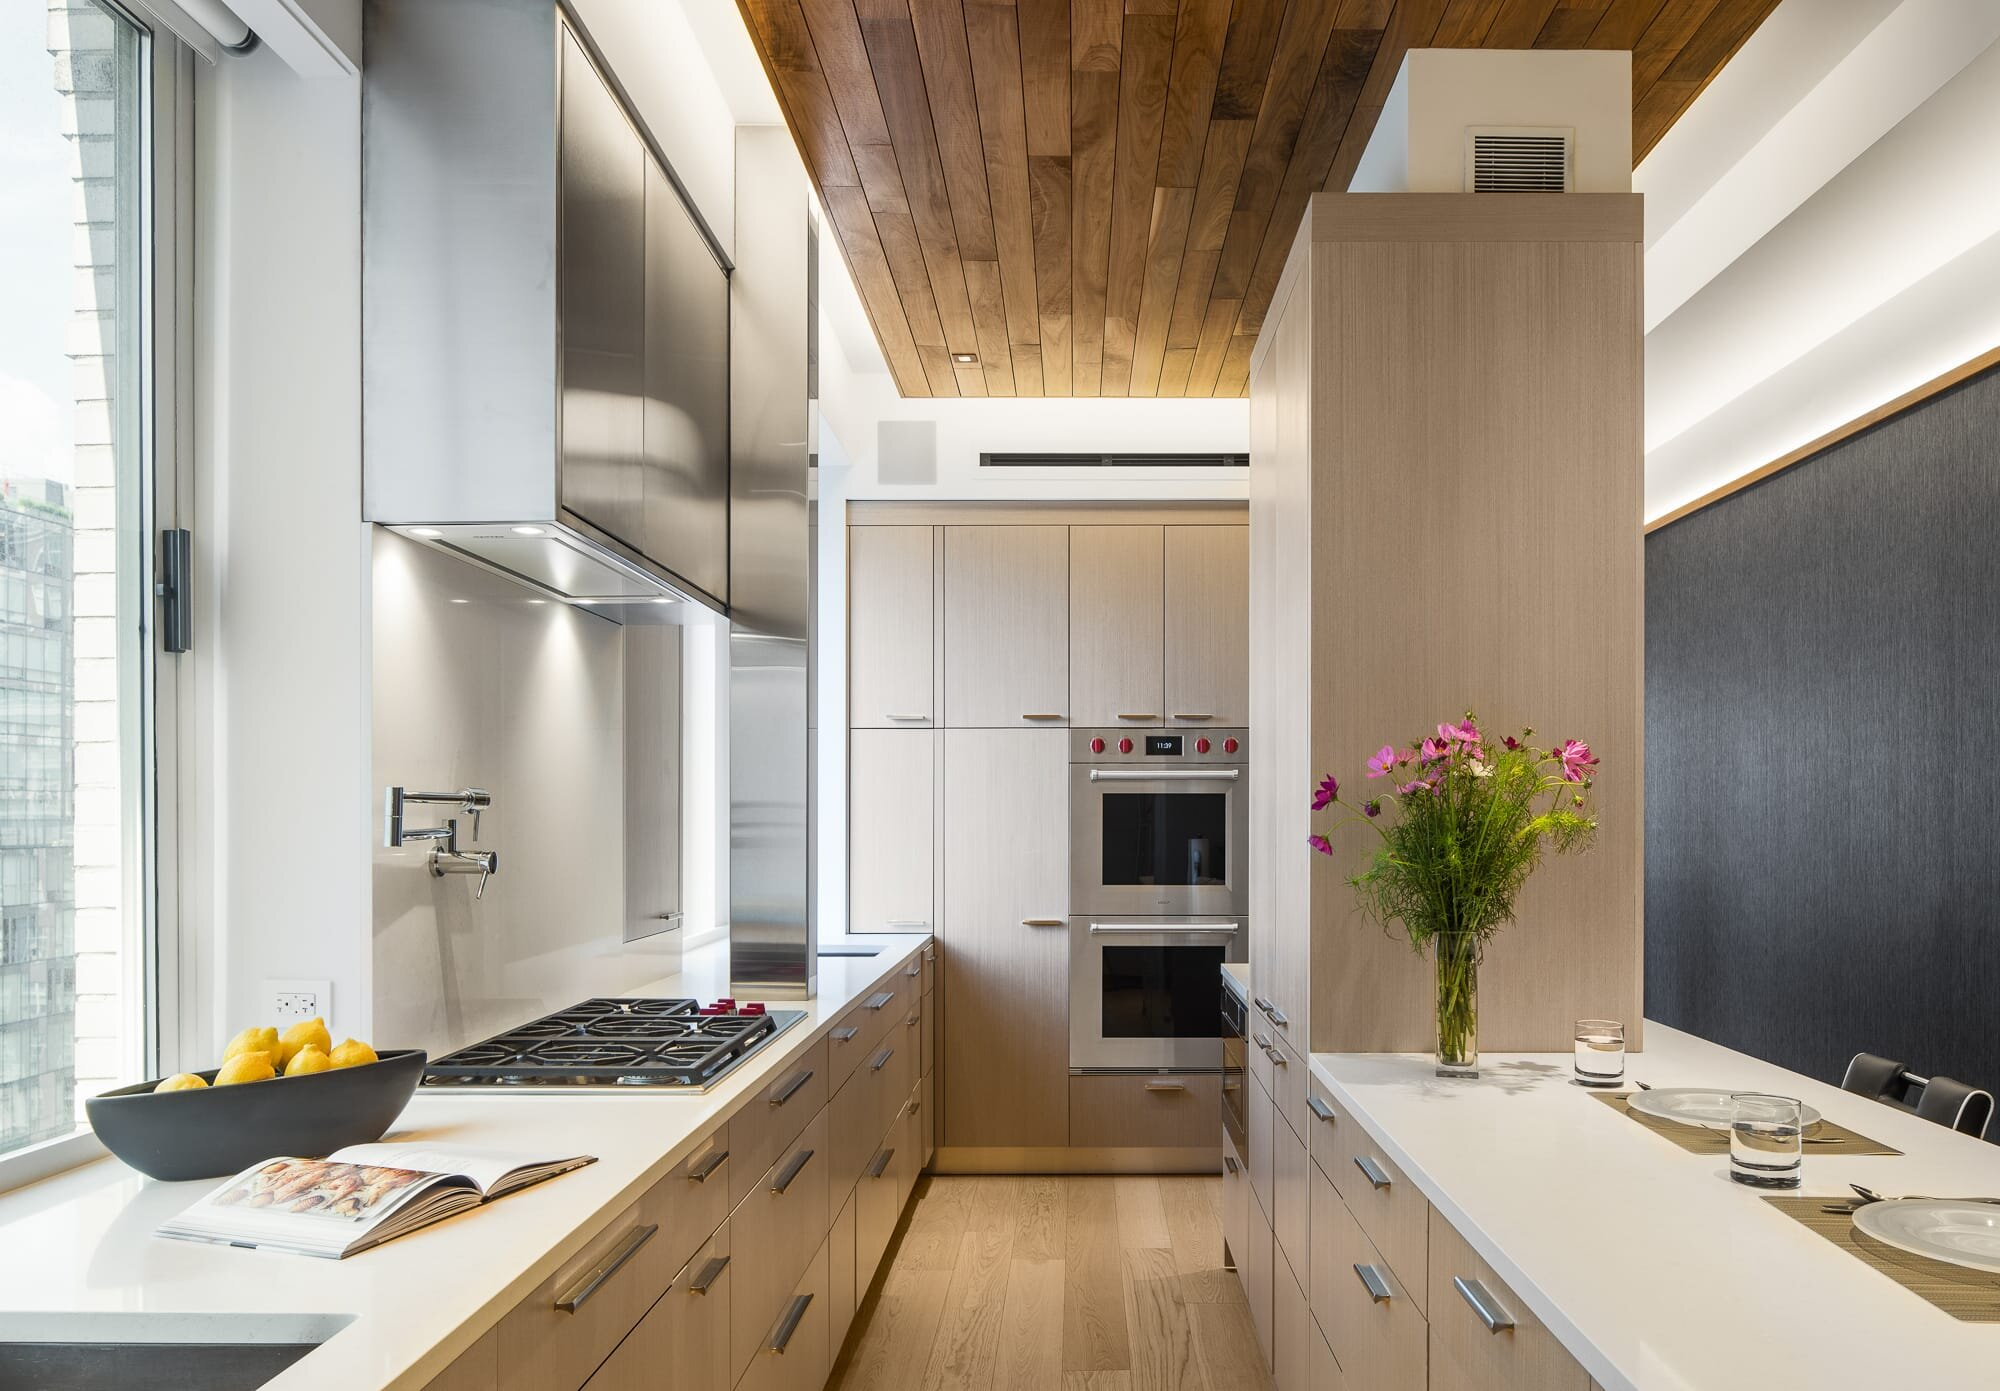 Kitchen designed by Andrew Wilkinson Architect